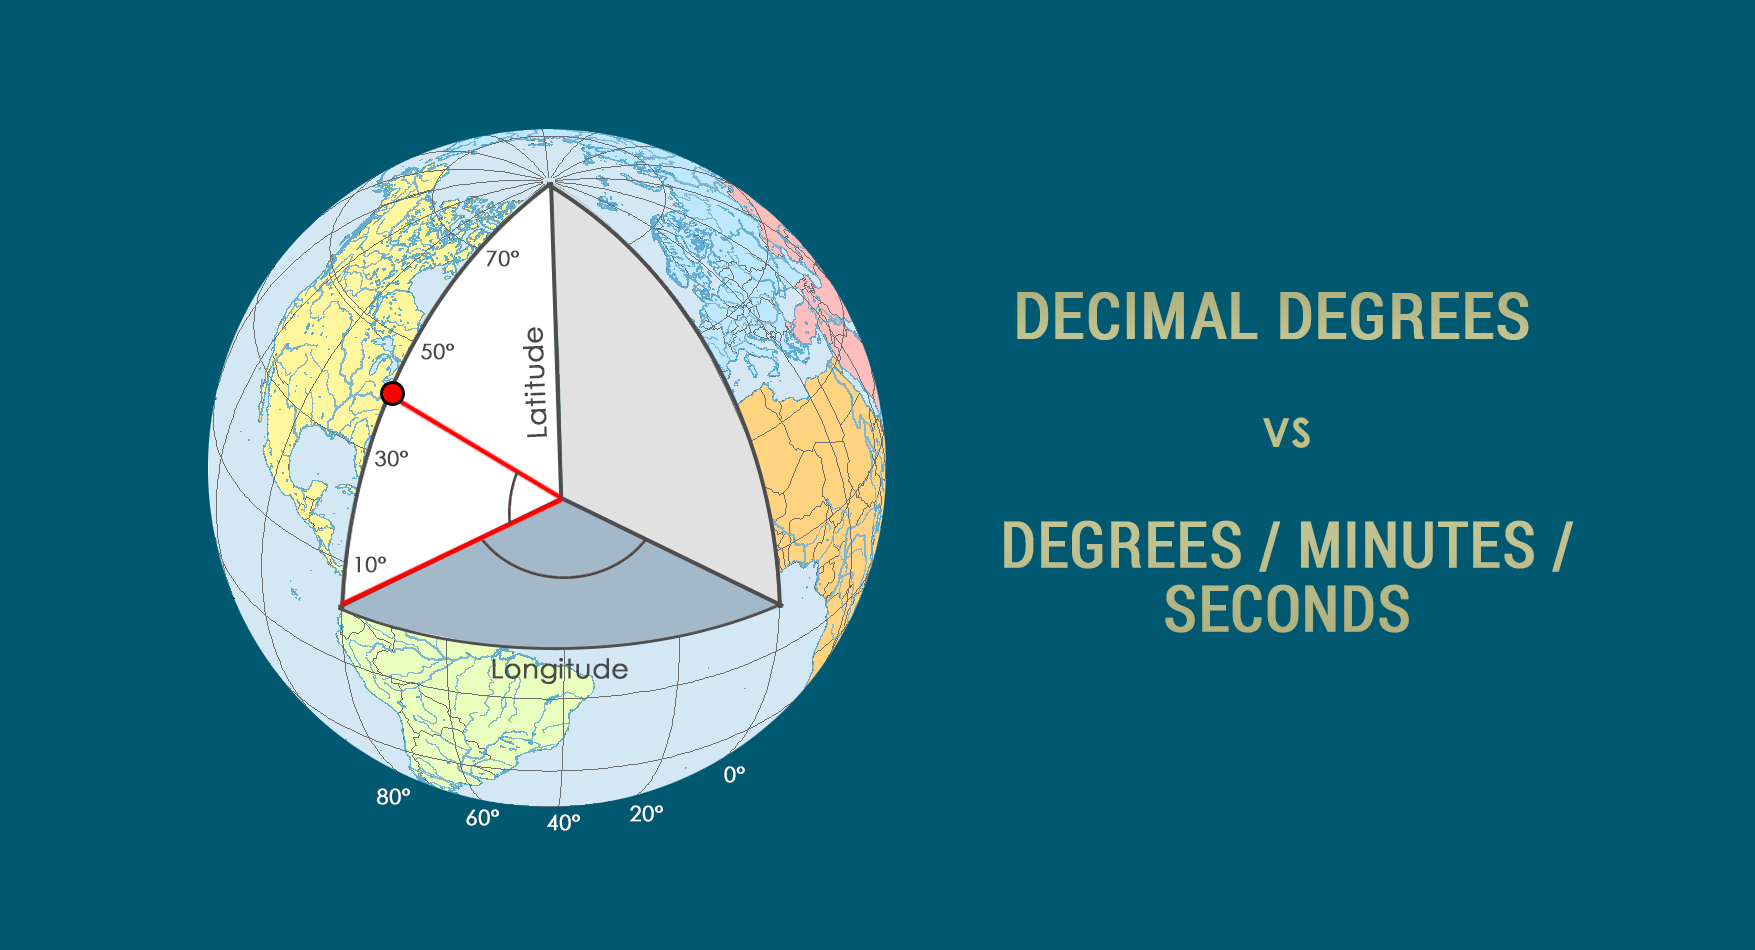 Degreesminutesseconds Dms Vs Decimal Degrees Dd Gis Geography